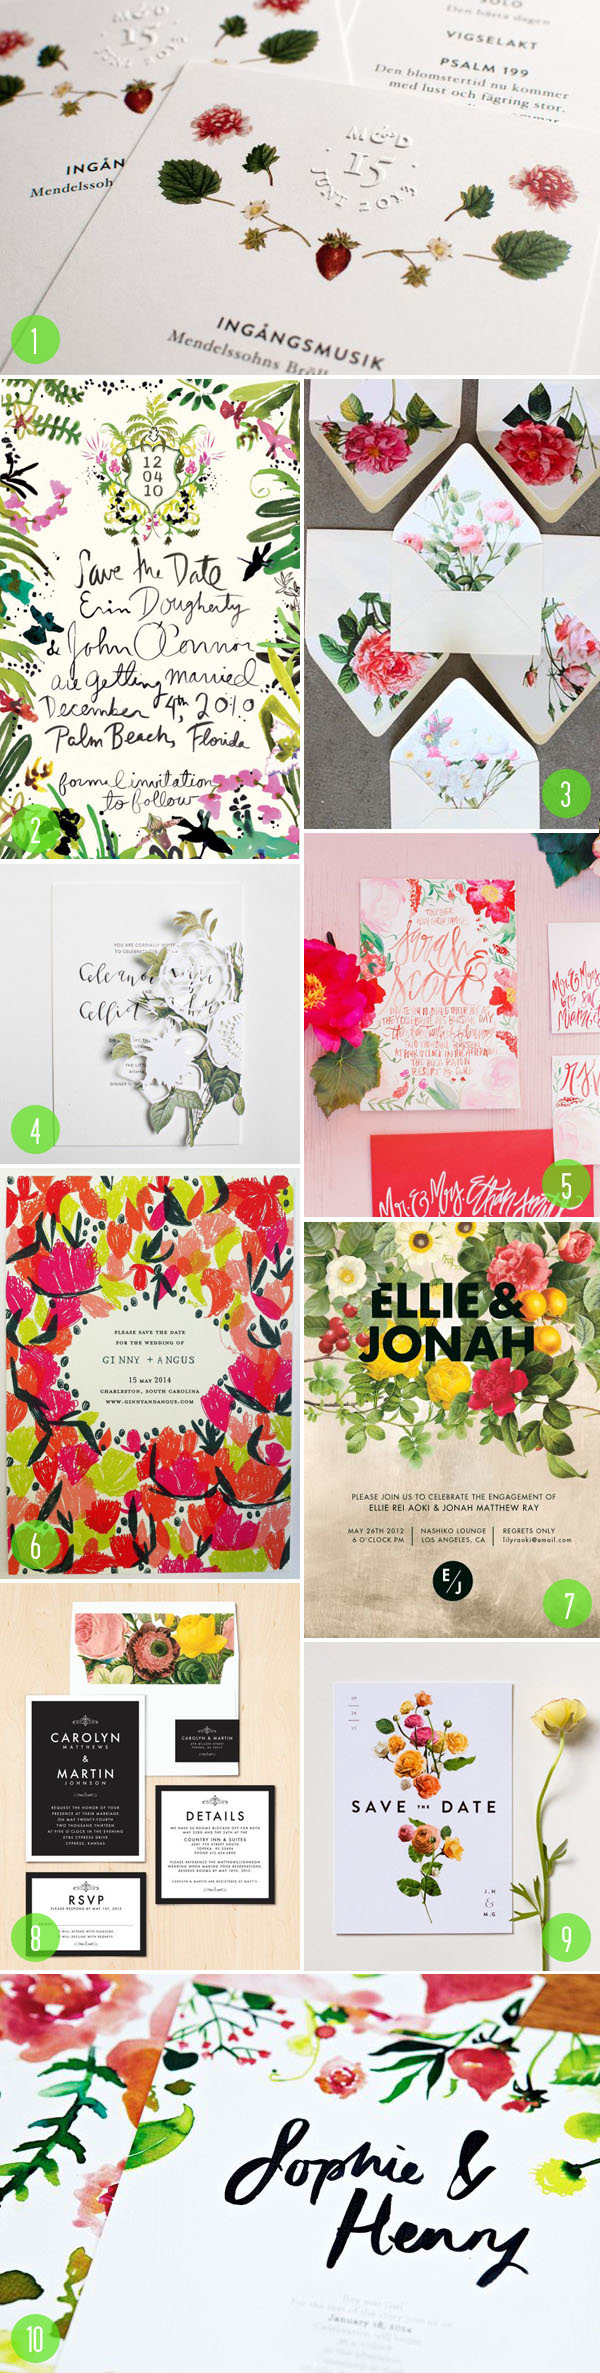 top 10: floral wedding invitations